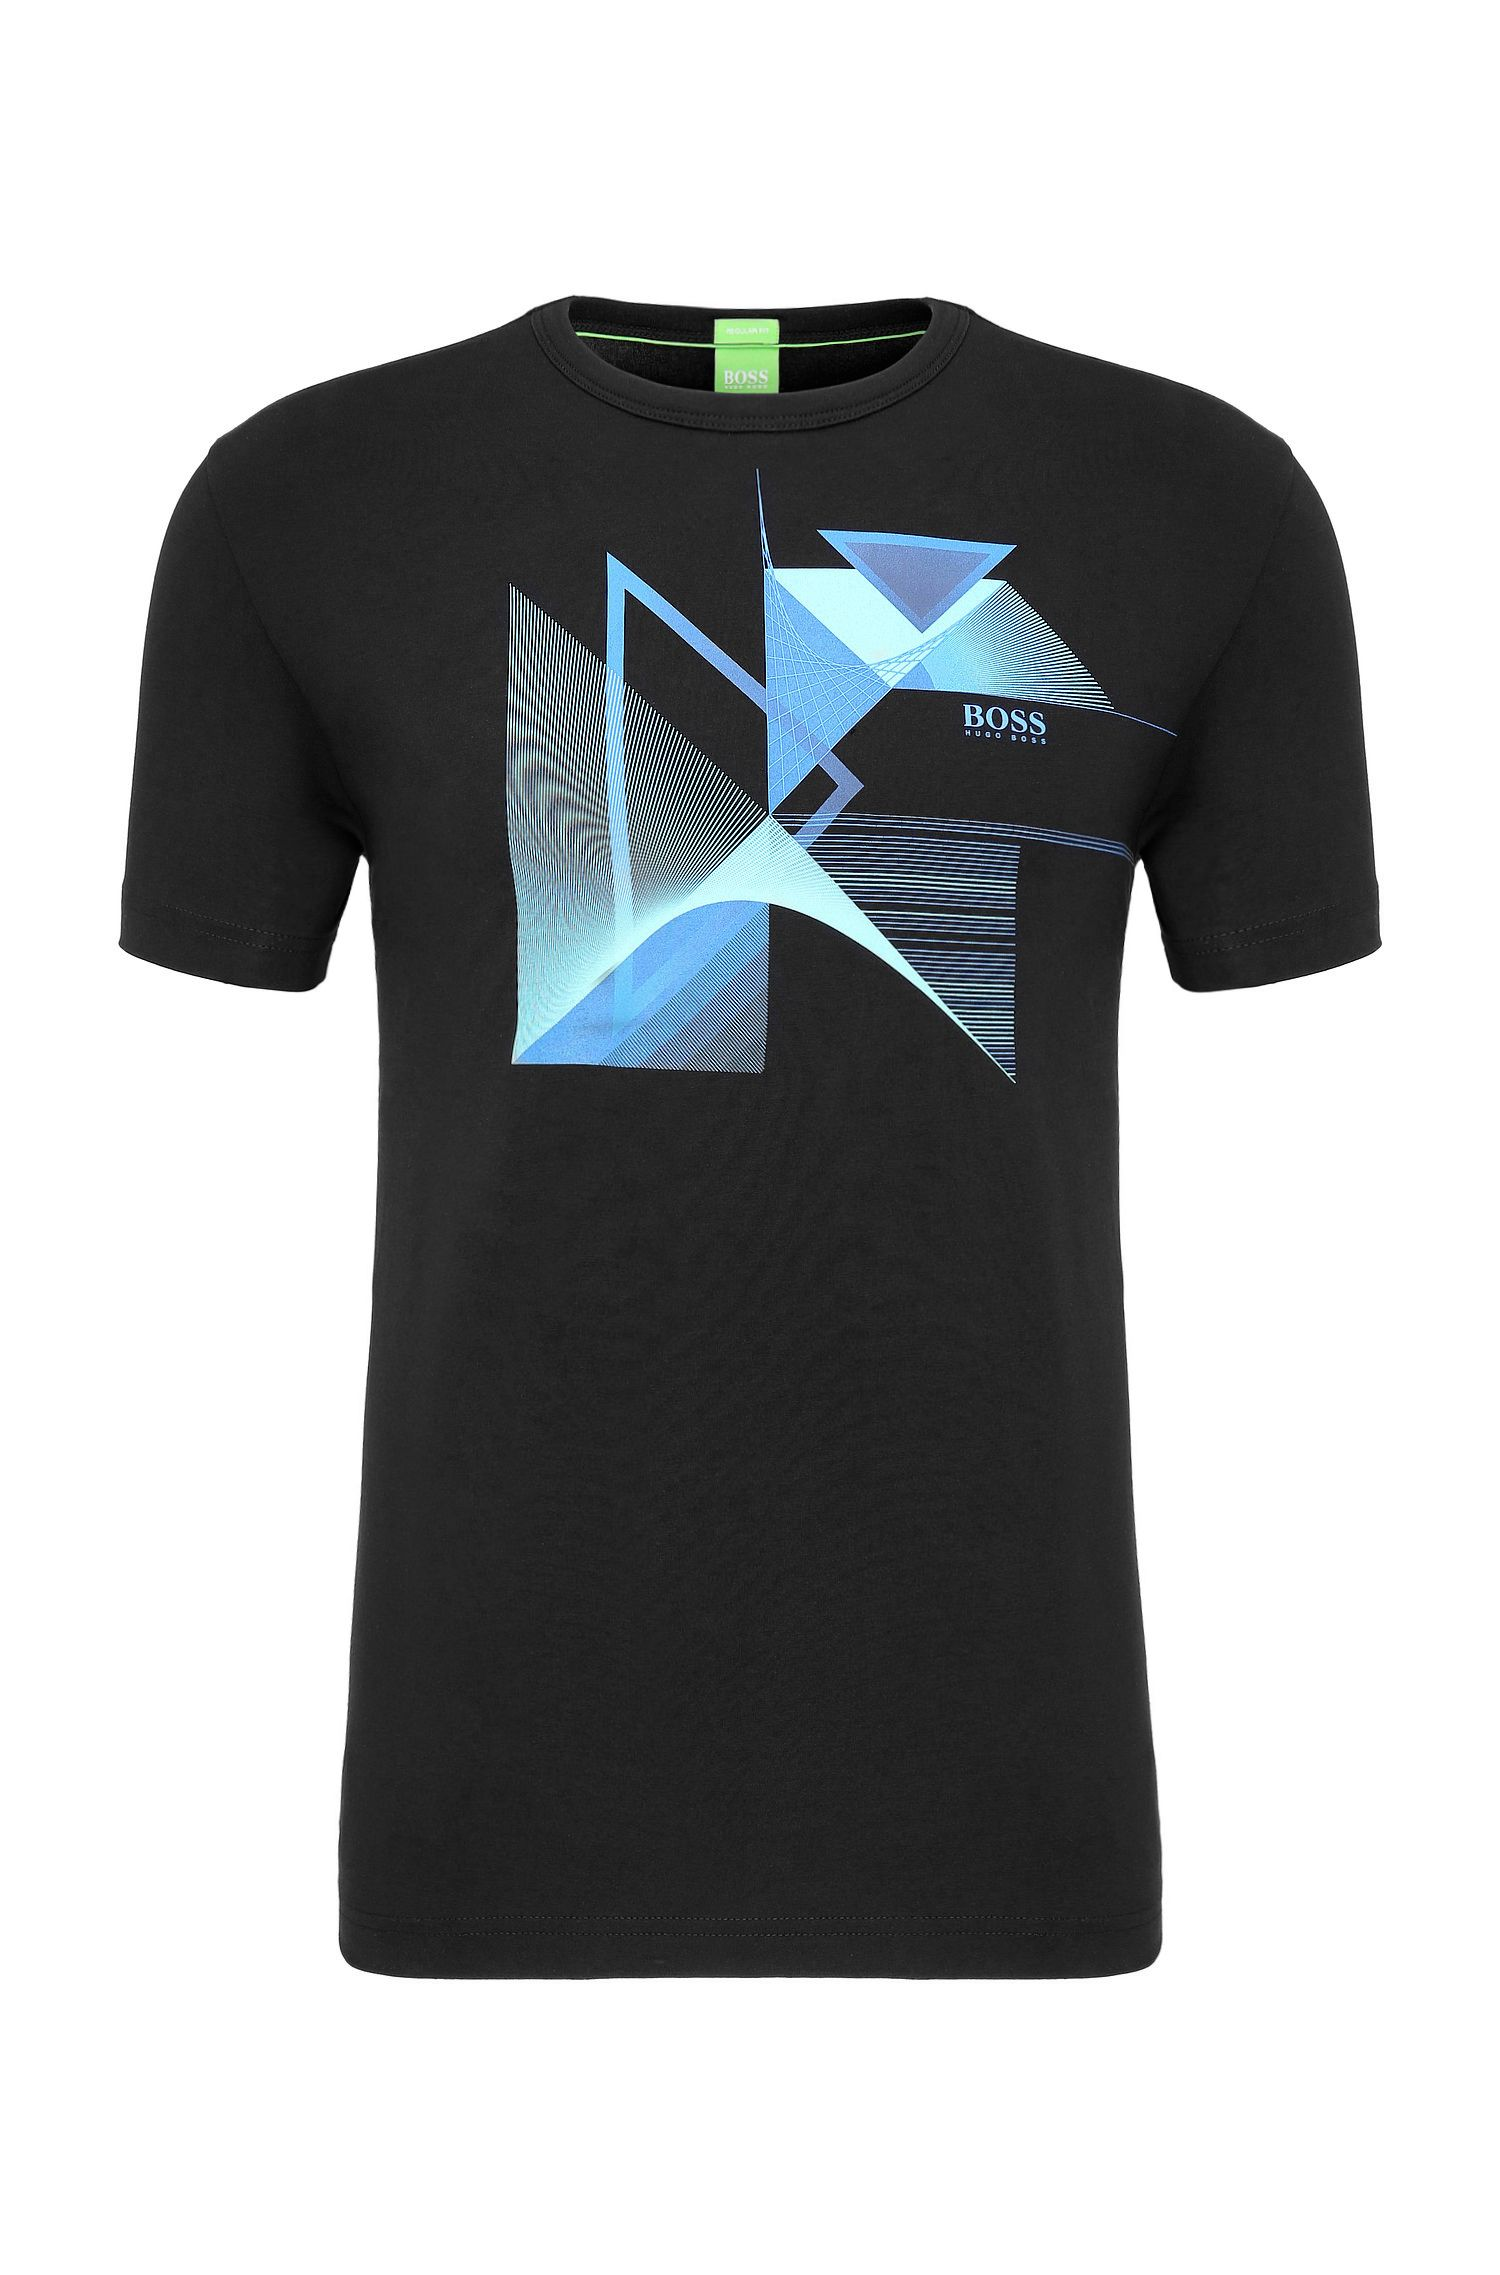 'Tee'   Stretch Cotton Graphic T-Shirt